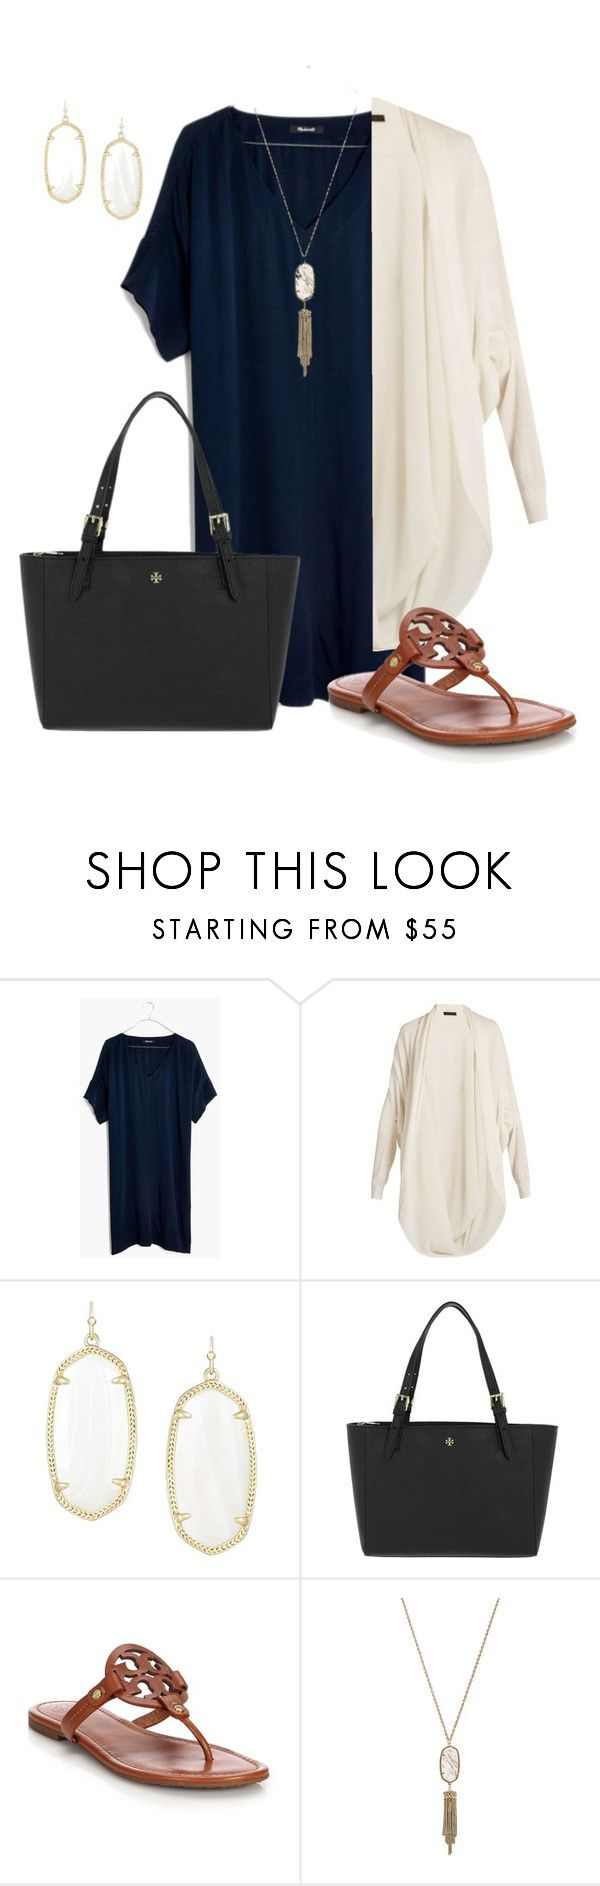 """""""Untitled #133"""" by soccerstreak on Polyvore featuring Madewell, The Row, Kendra Scott and Tory Burch"""